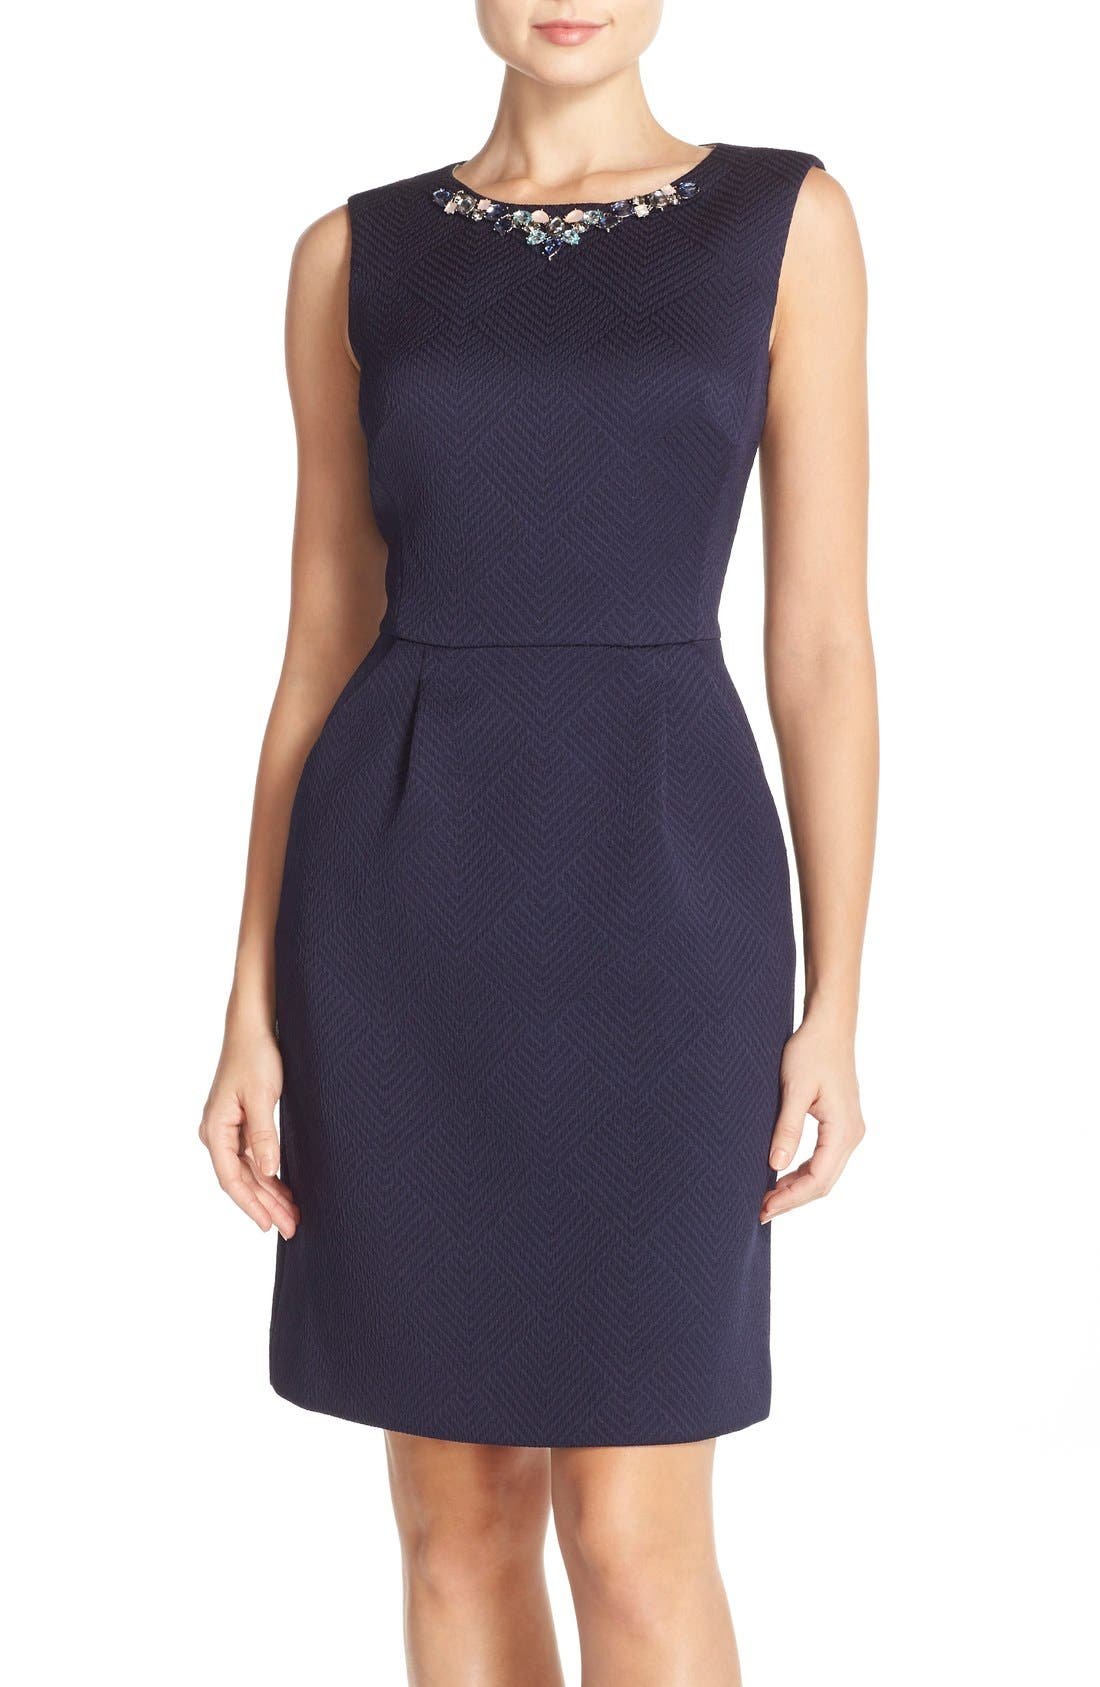 Main Image - Tahari Bejeweled Neck Jacquard Sheath Dress (Regular & Petite)